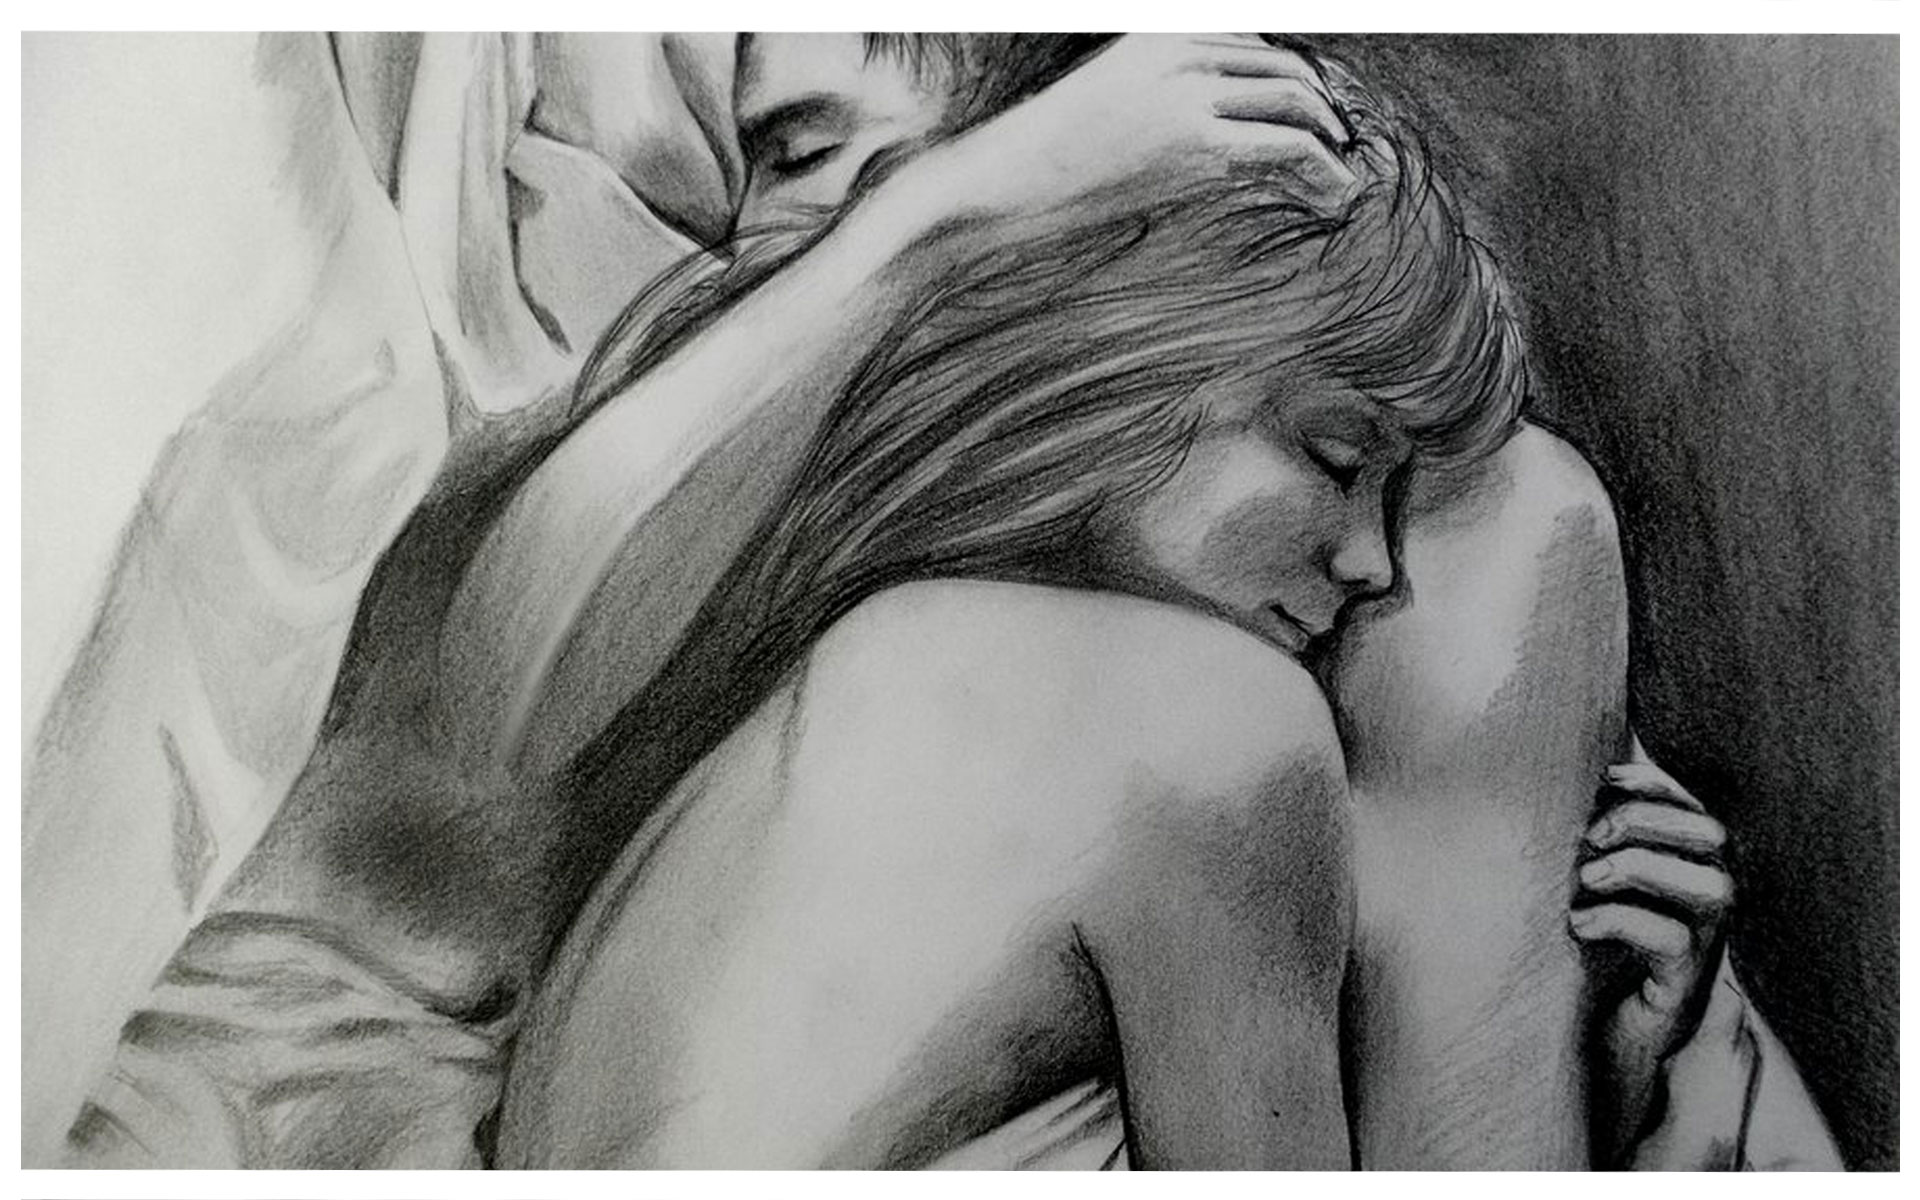 Artists Incredible Pencil Drawings Depict The Glimpse Of Love That